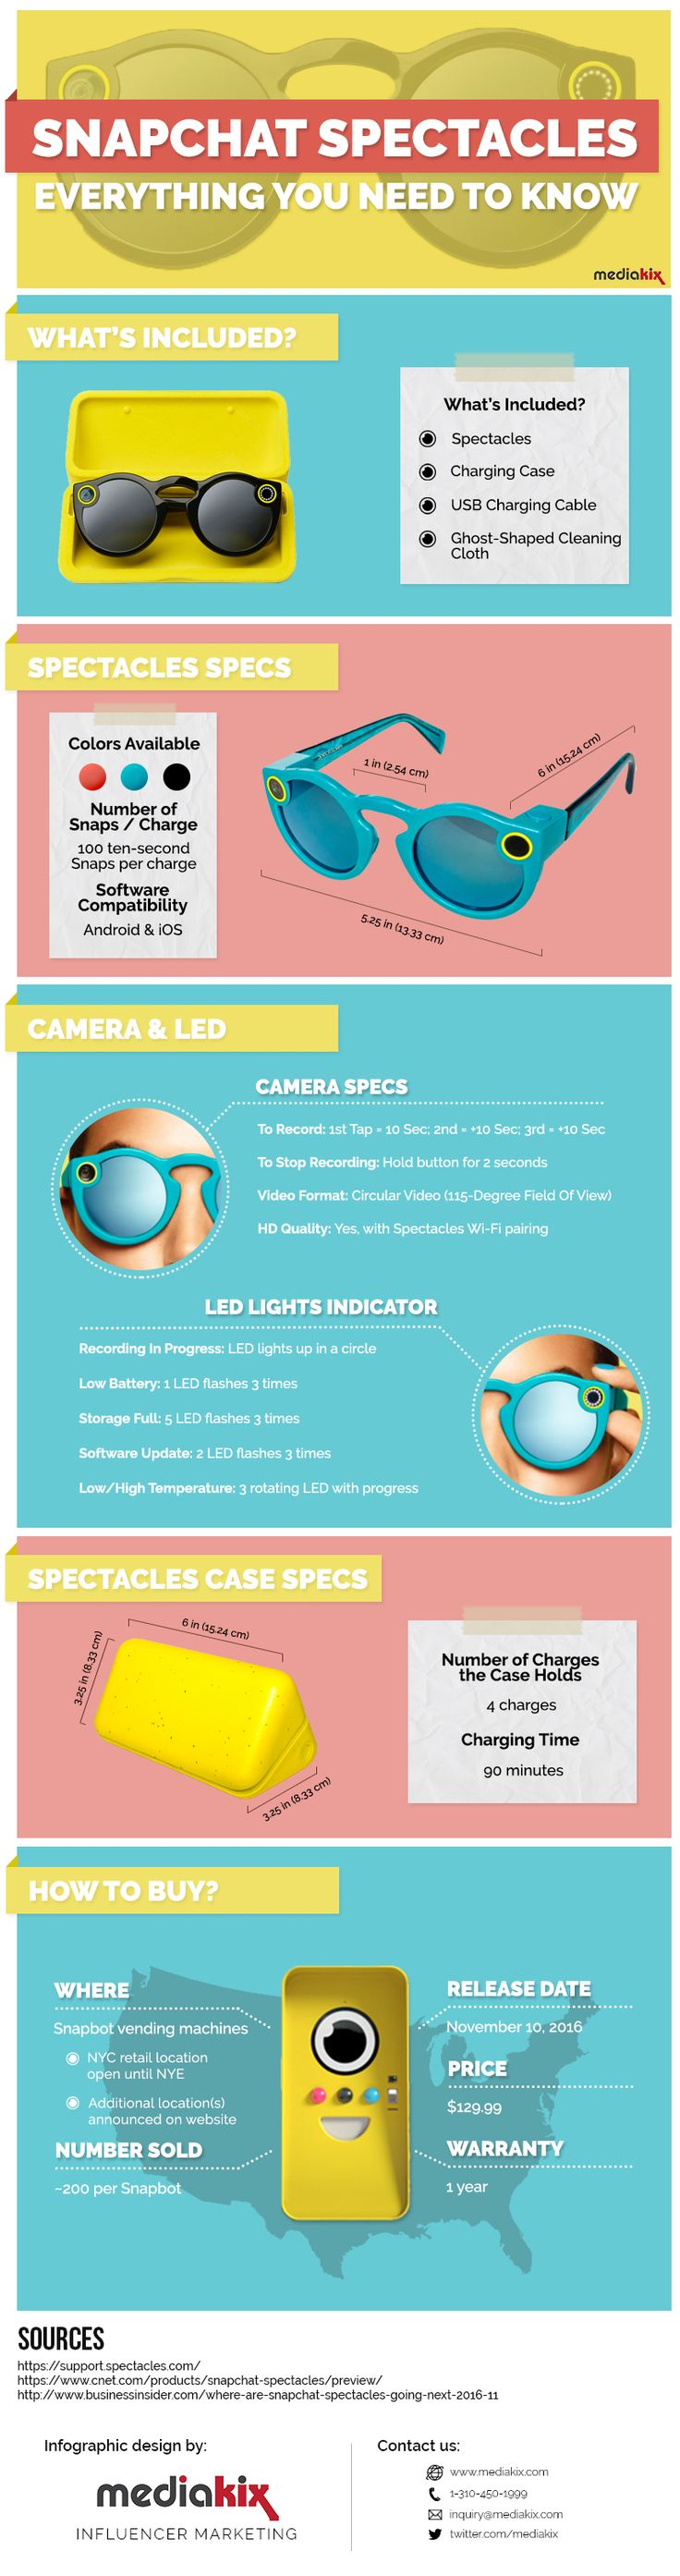 Snapchat Spectacles: Everything You Need To Know #Infographic #SnapChat #SocialMedia